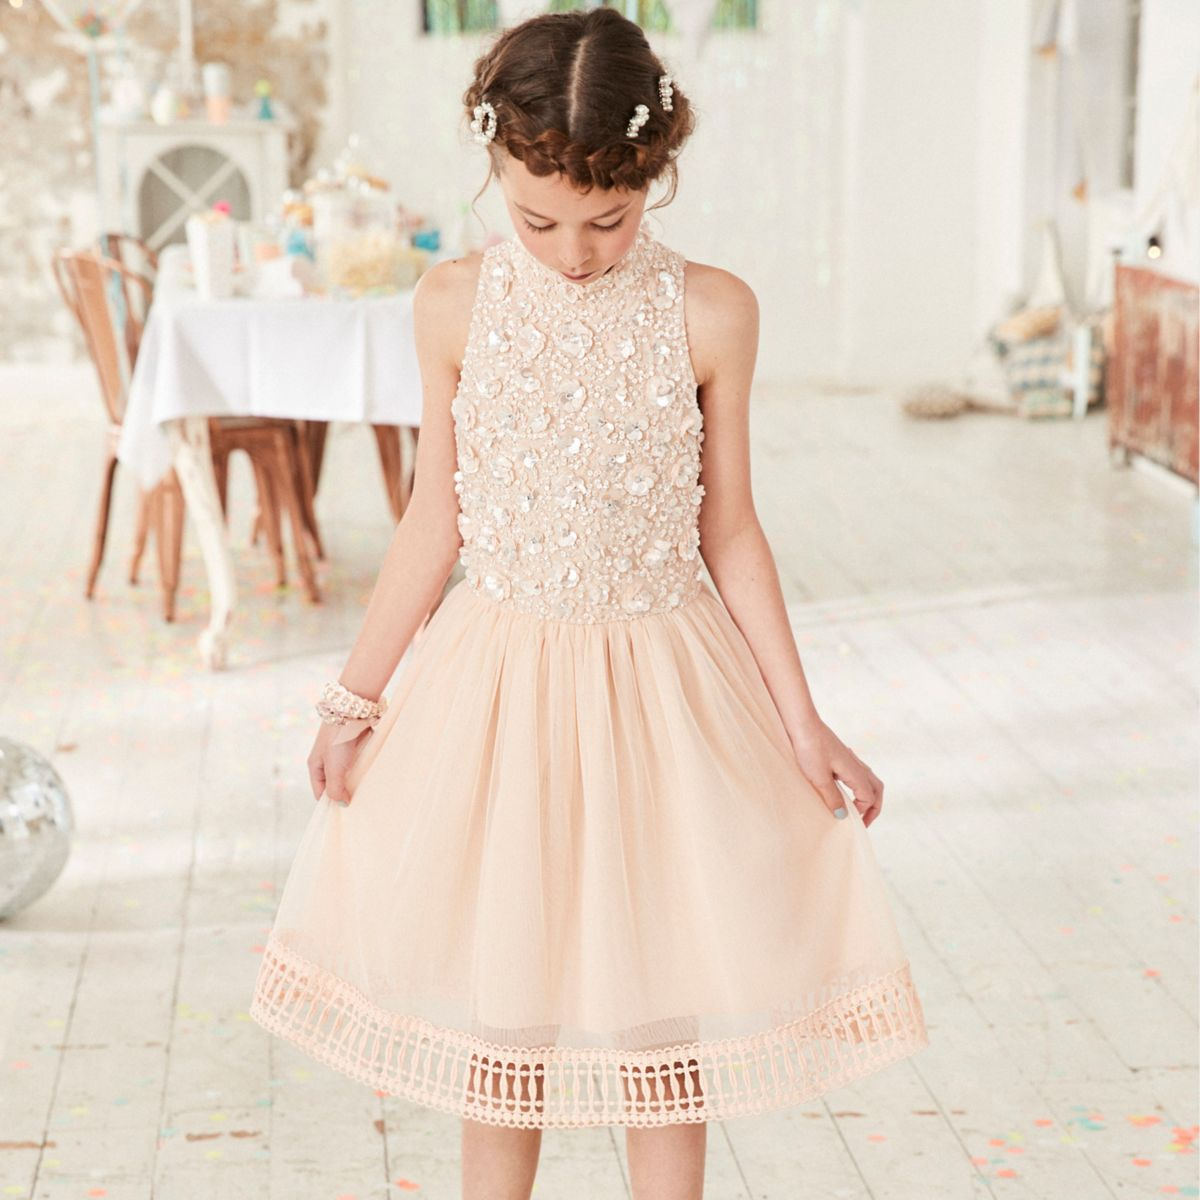 Flower Dress: Girls Pink Embellished Mesh Flower Girl Dress